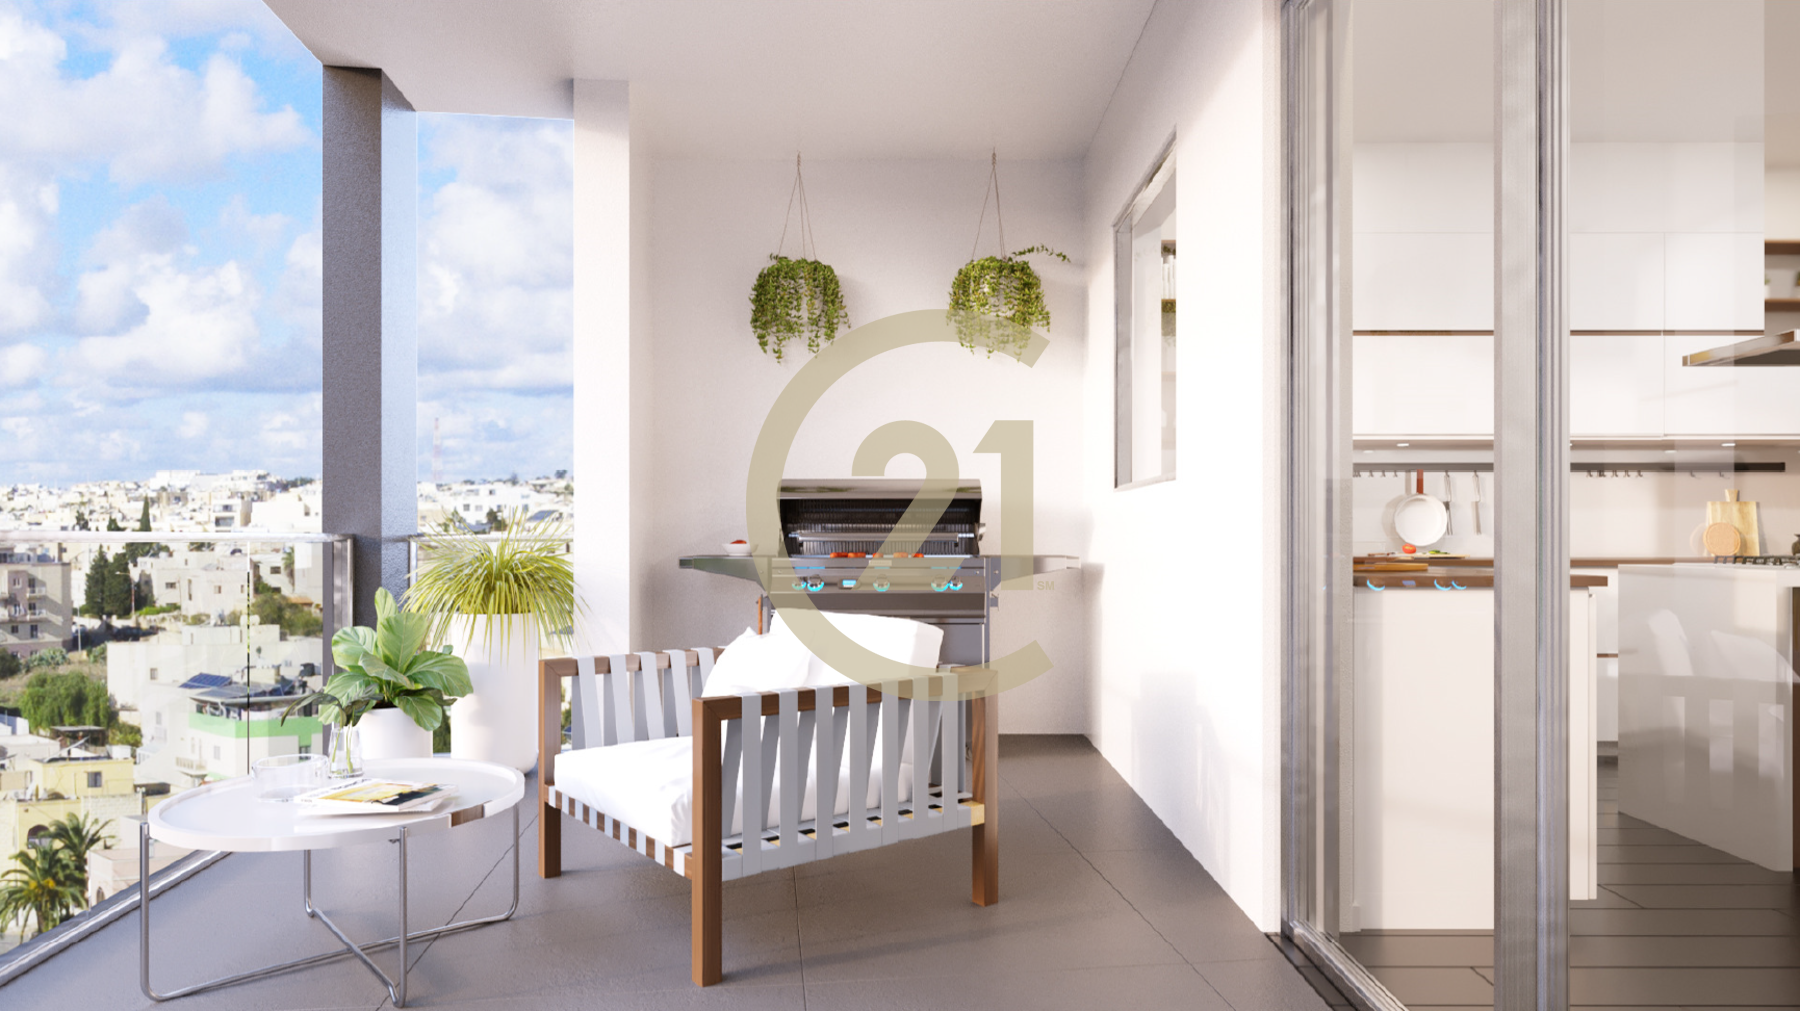 Finished Apartment For Sale in Zurrieq - Century 21 Malta